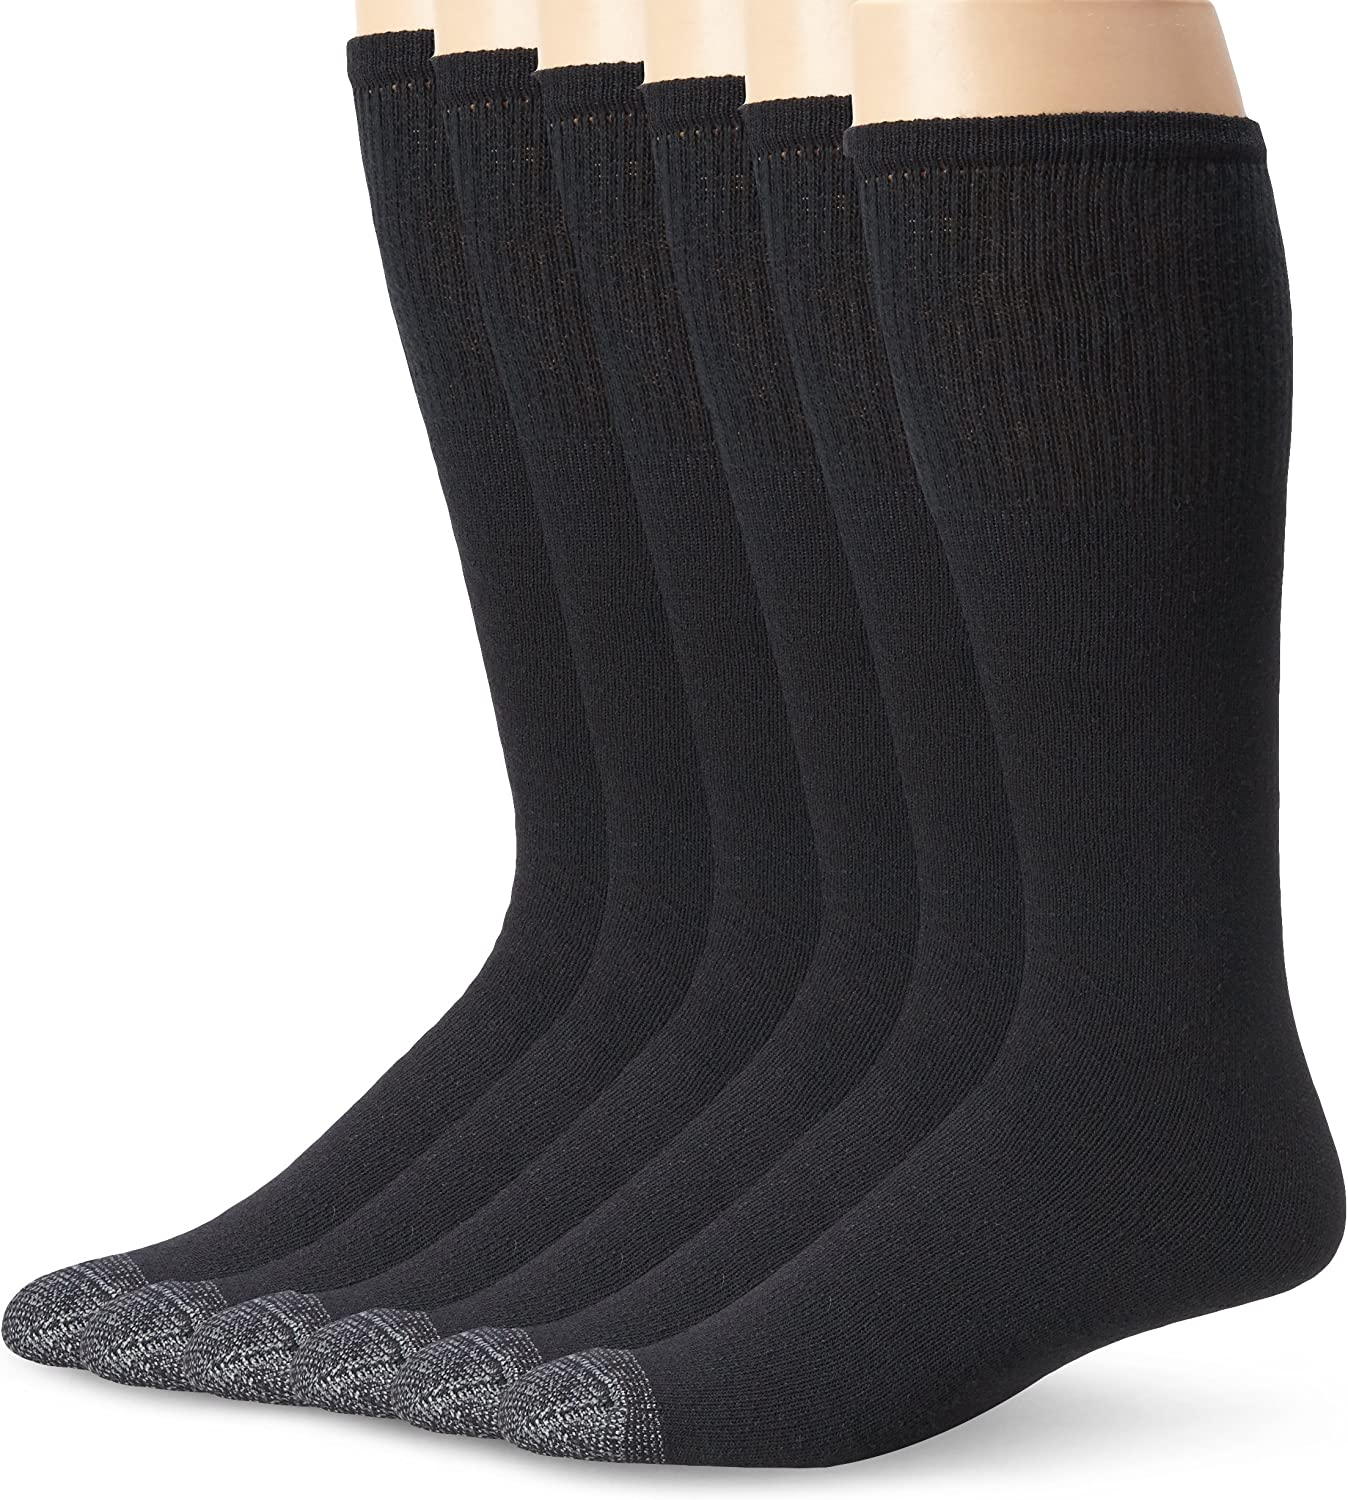 Fruit of the Loom Men's 6 Pack Over The Calf Tube Socks,